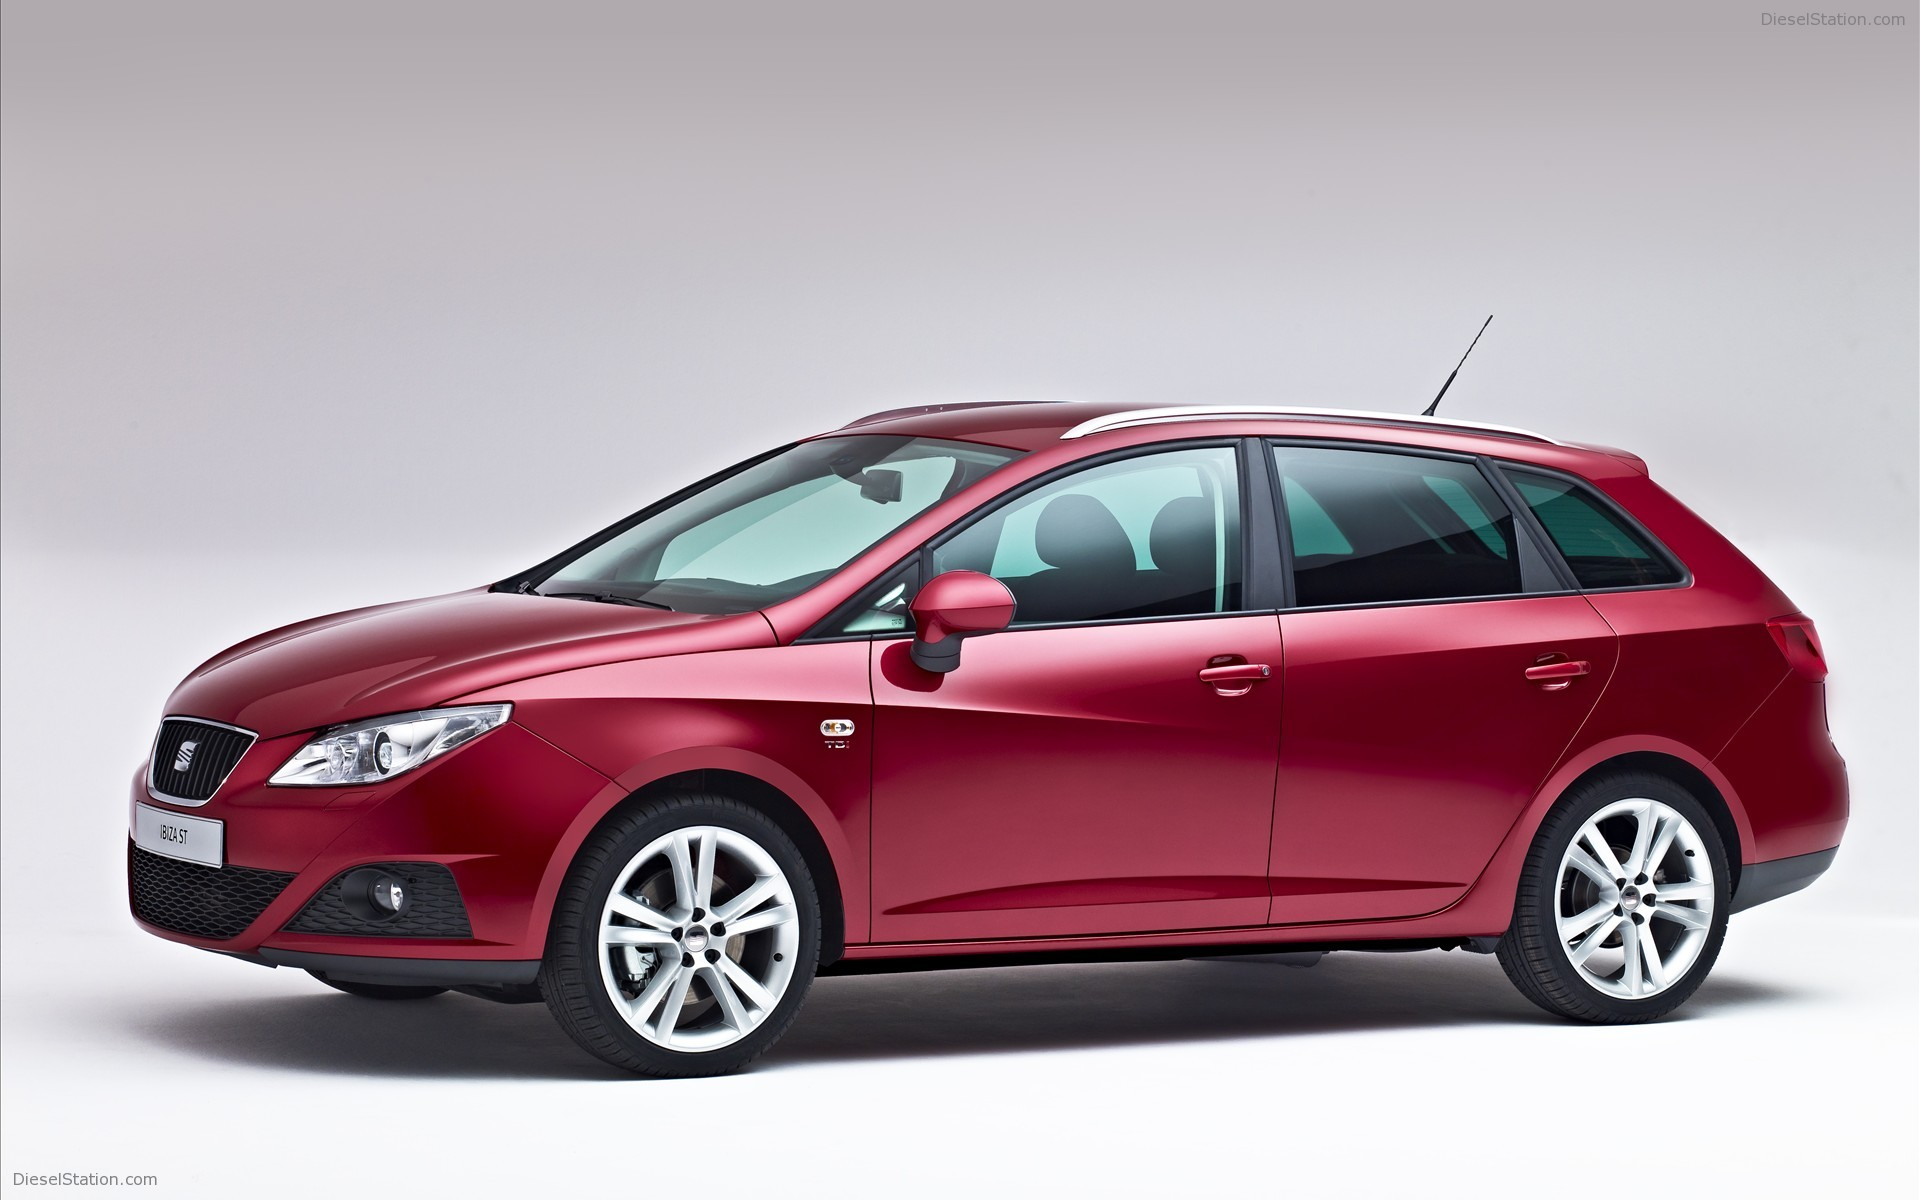 2014 seat ibiza st pictures information and specs. Black Bedroom Furniture Sets. Home Design Ideas